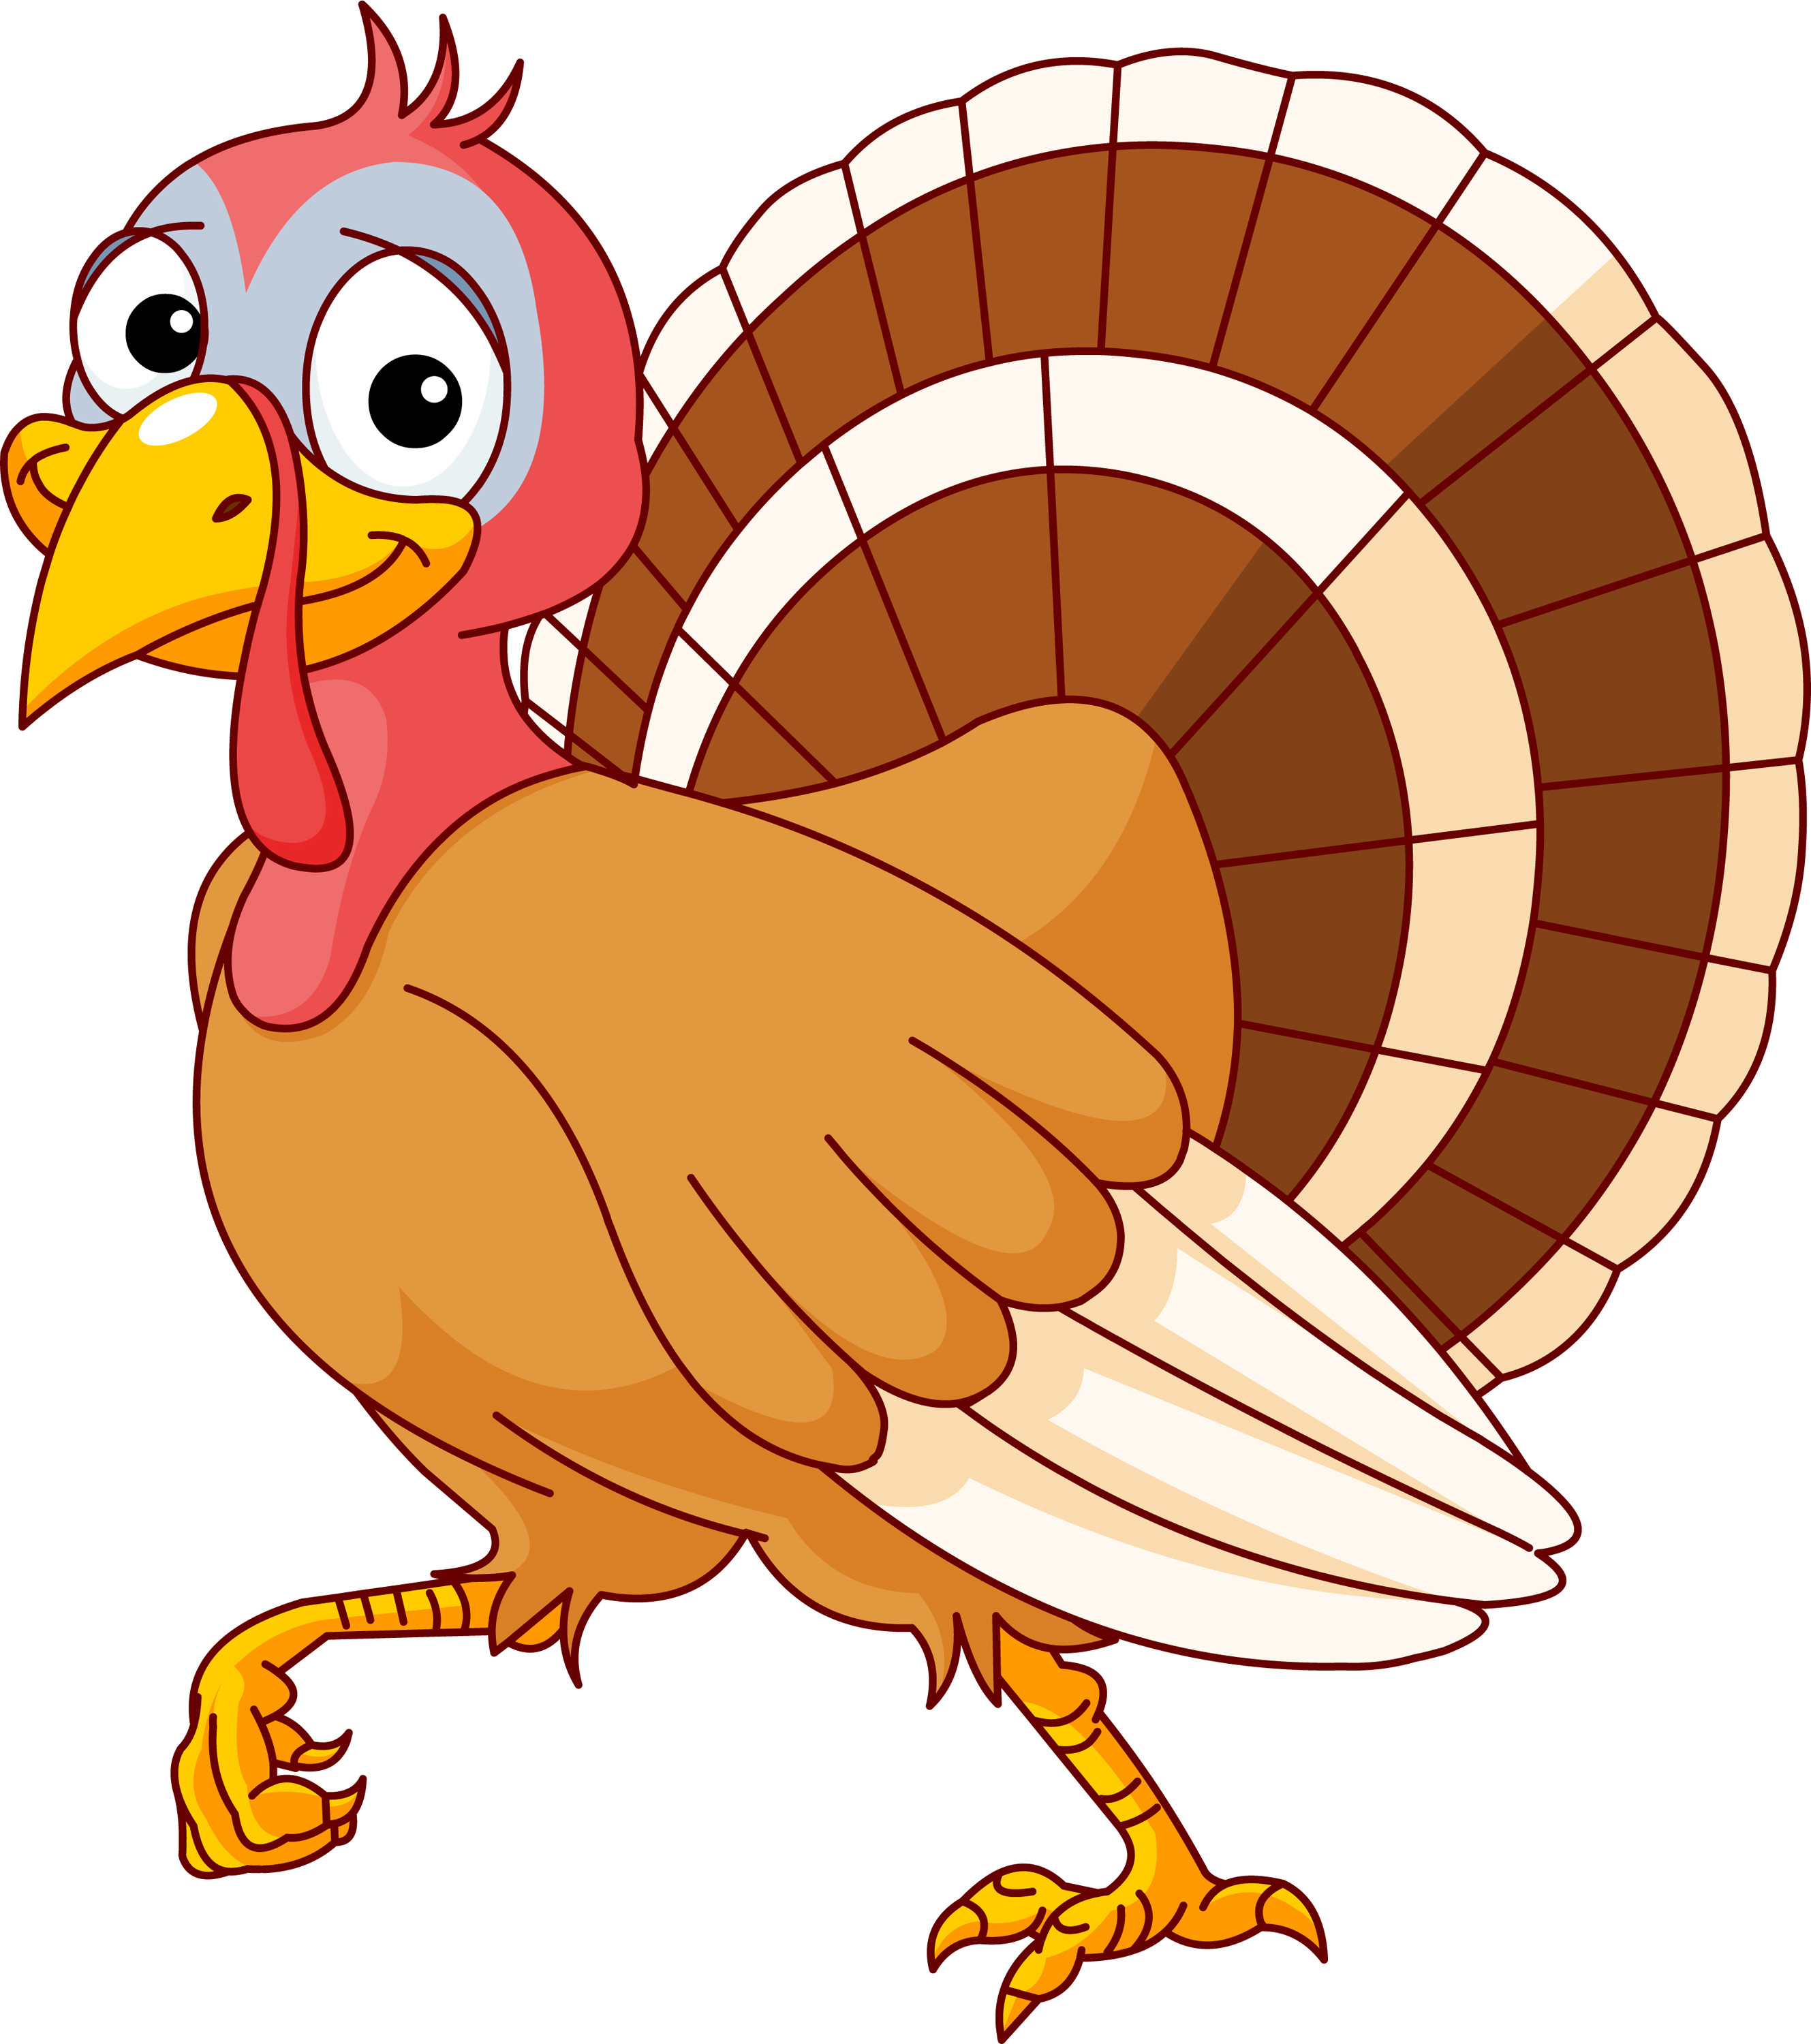 Picture Of Thanksgiving Turkey  Day 6 Write a letter as a turkey convincing people to